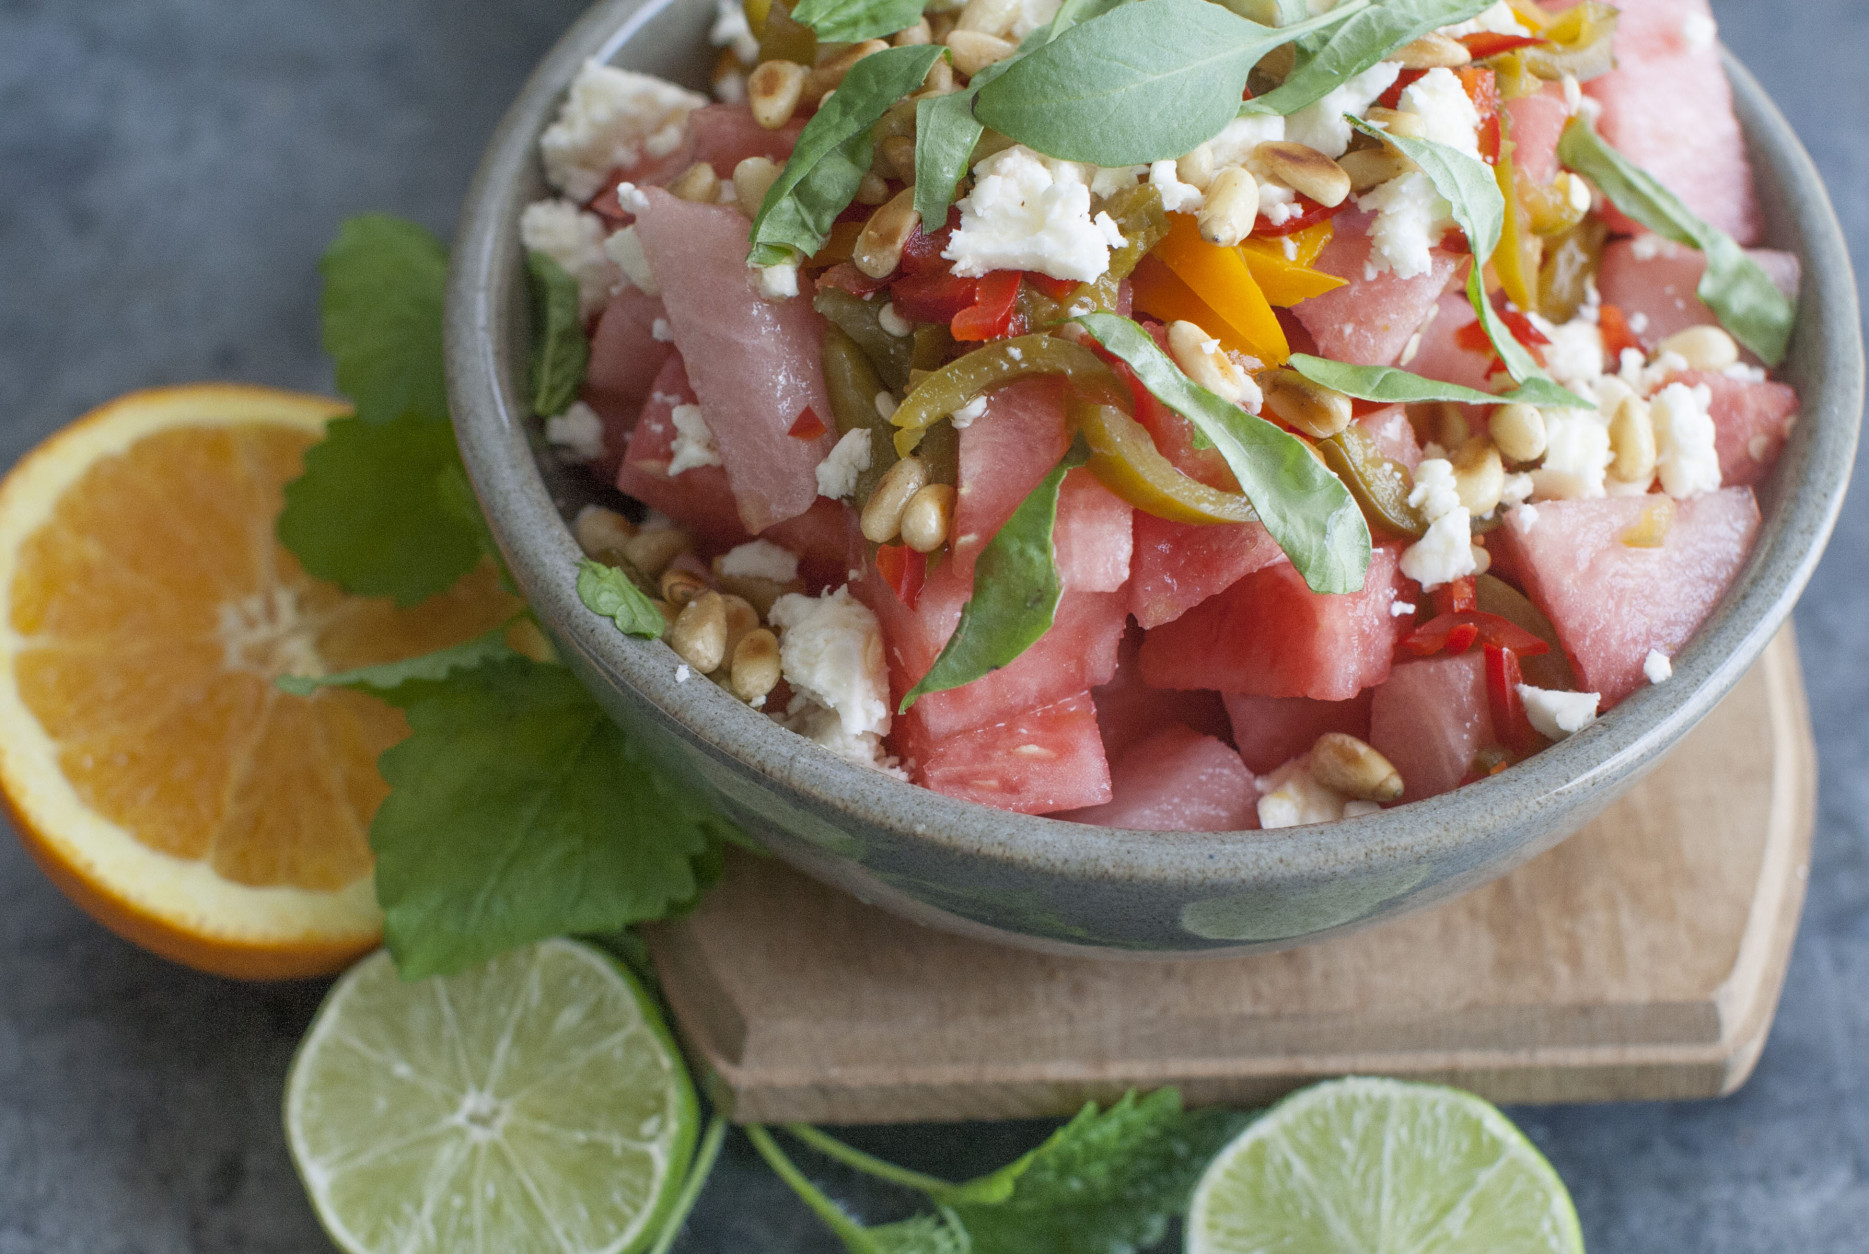 This June 30, 2014 photo shows spicy watermelon salad with feta and basil in Concord, N.H. (AP Photo/Matthew Mead)